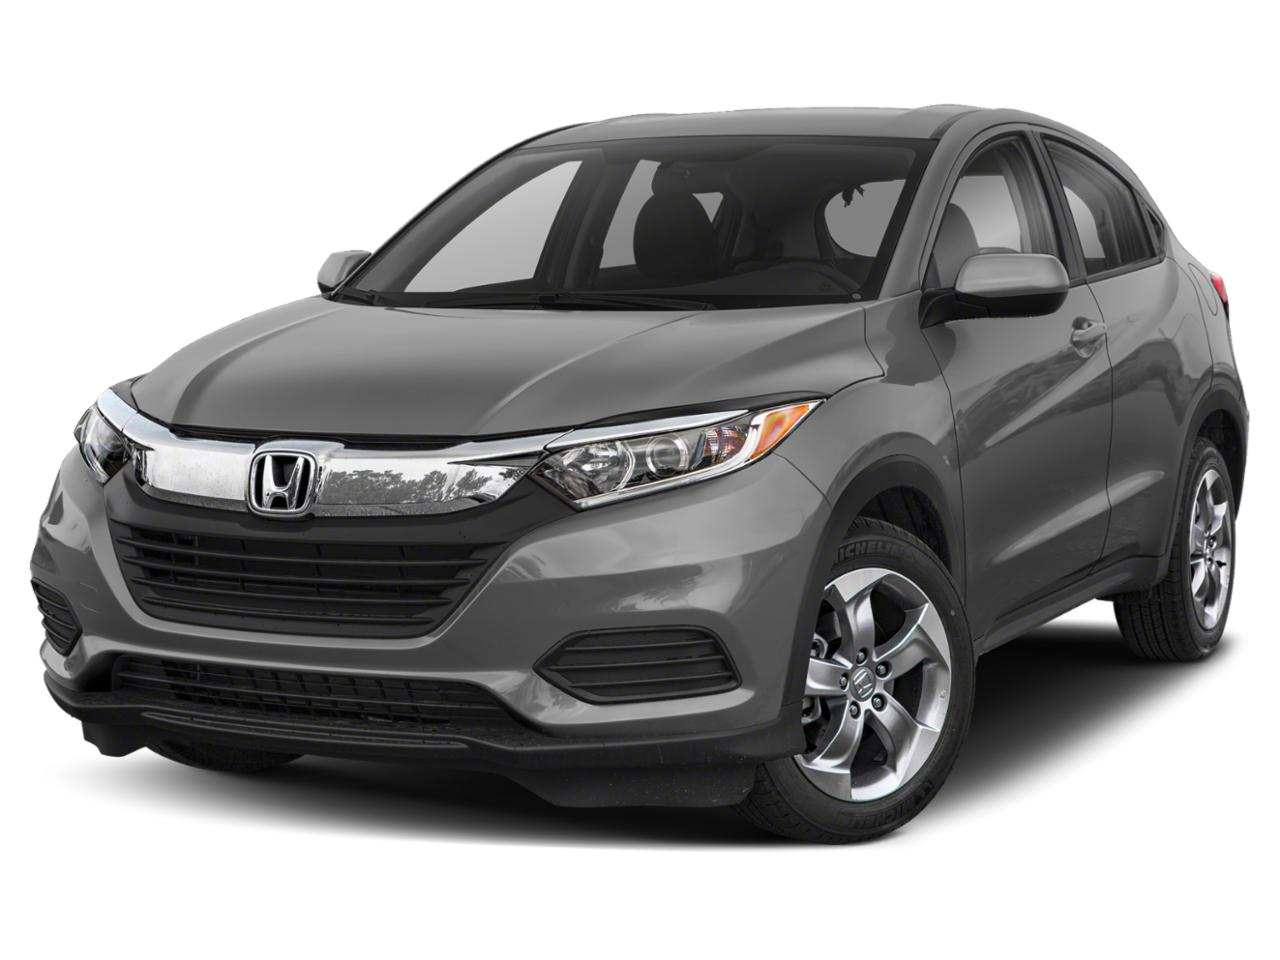 2021 Honda HR-V Vehicle Photo in Oshkosh, WI 54904